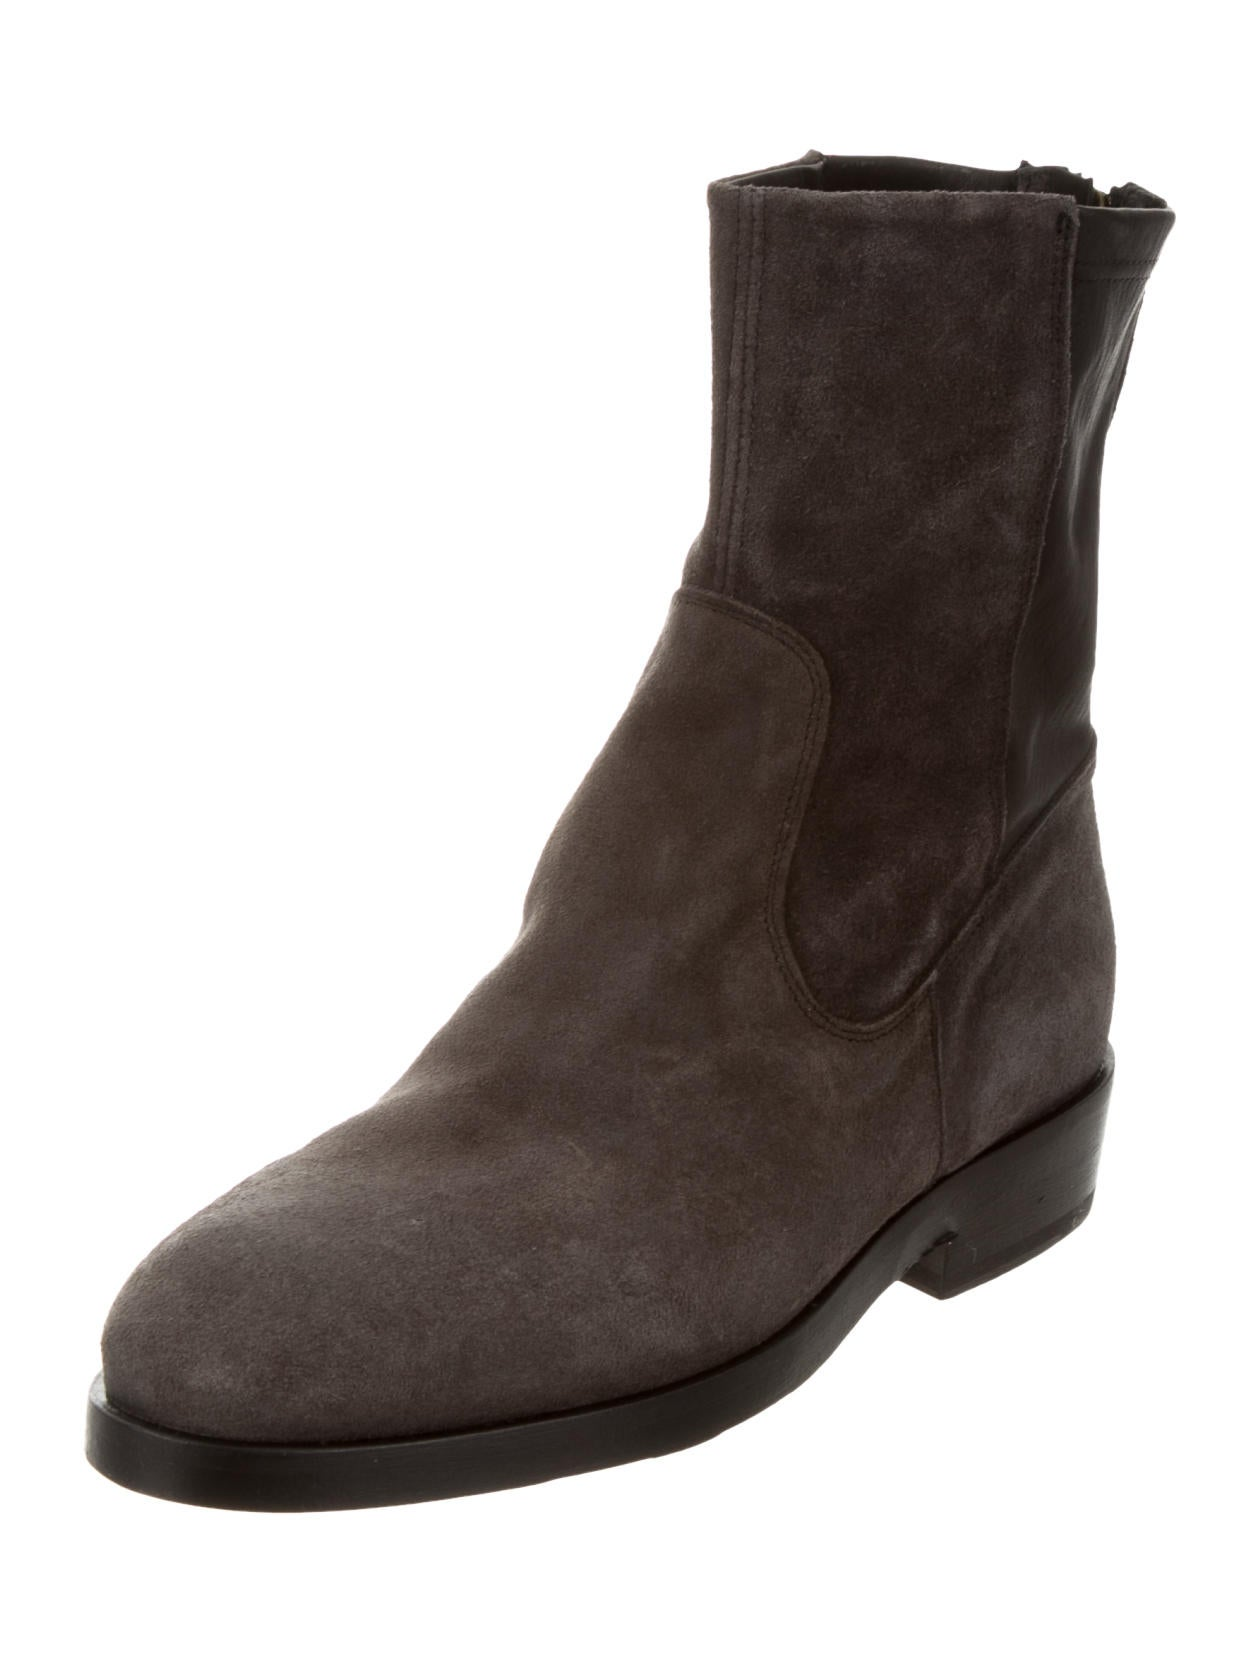 fiorentini baker suede ankle boots shoes wfb20311